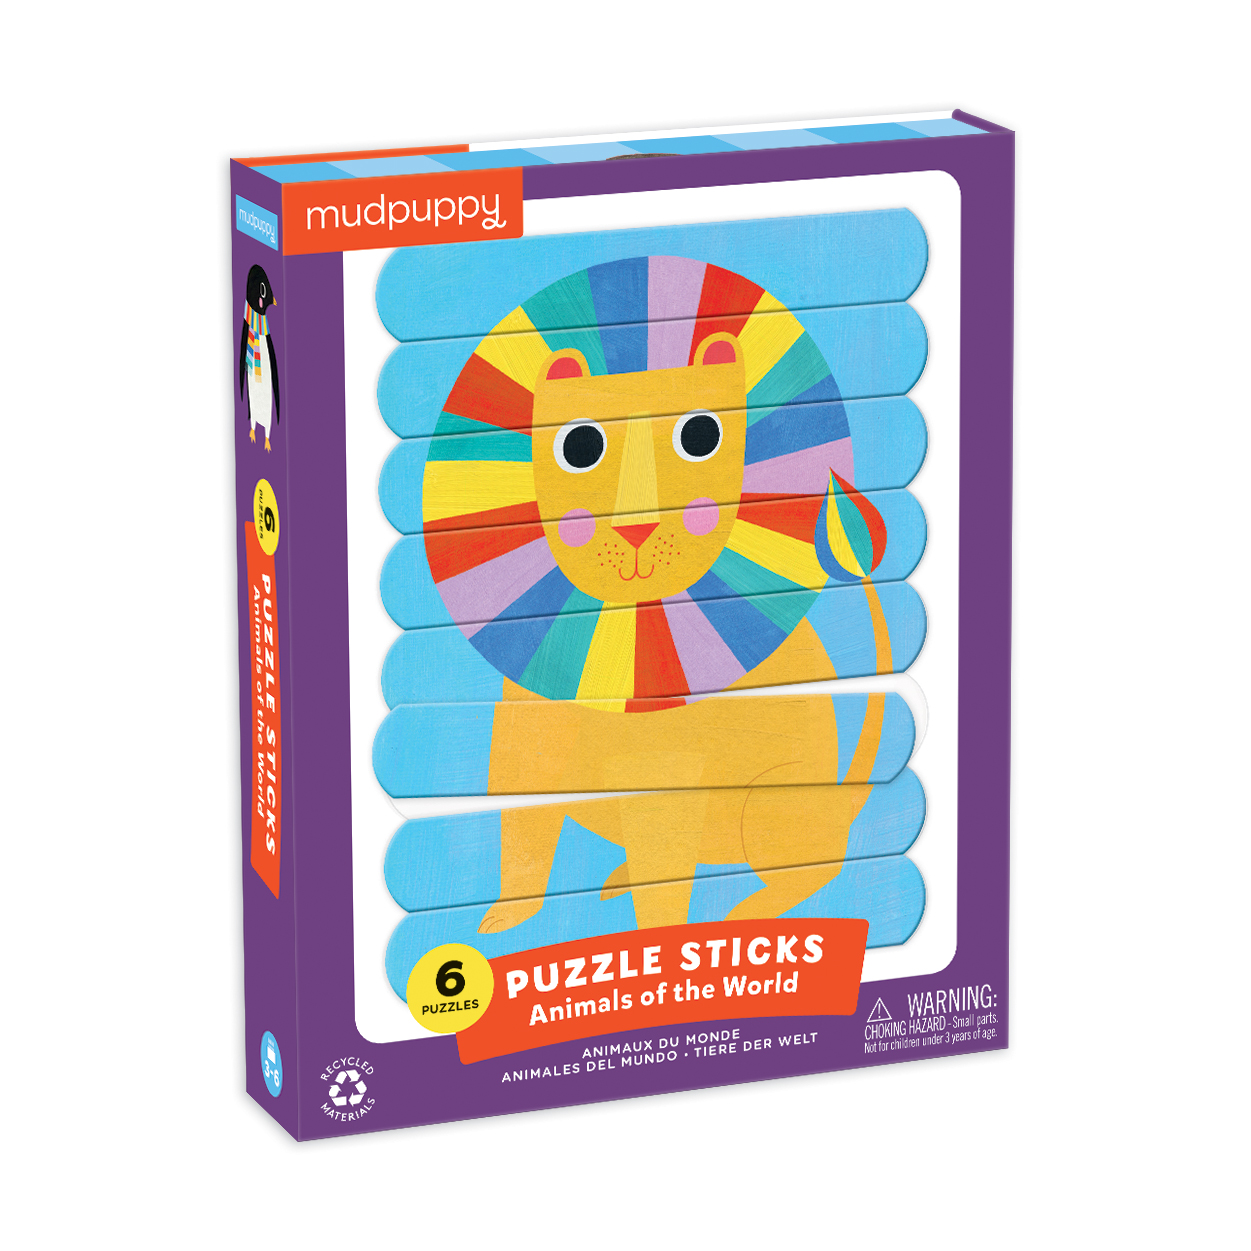 Mudpuppy Puzzle Sticks - Zvieratá sveta (24 ks) / Puzzle Sticks Animals of the World (24 pc)